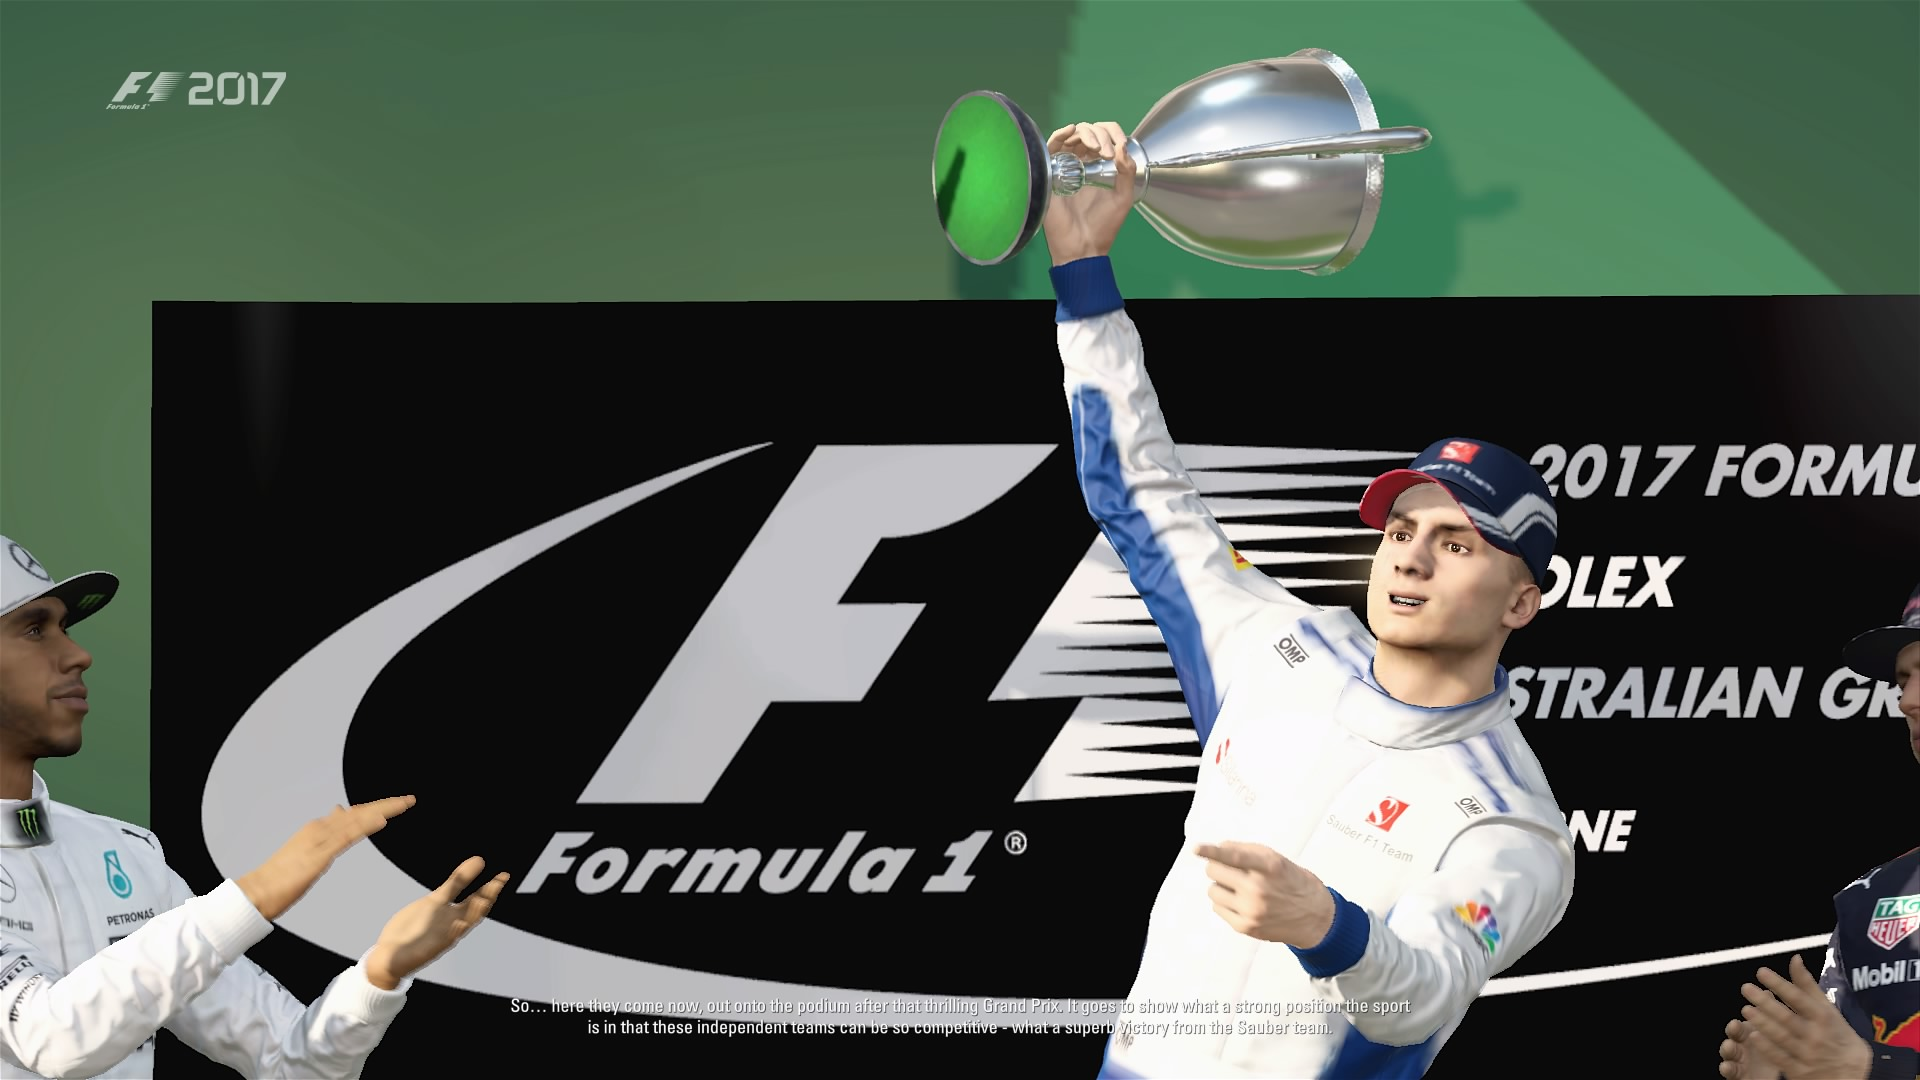 F1 2017 Review – As Real as You Want it to Be